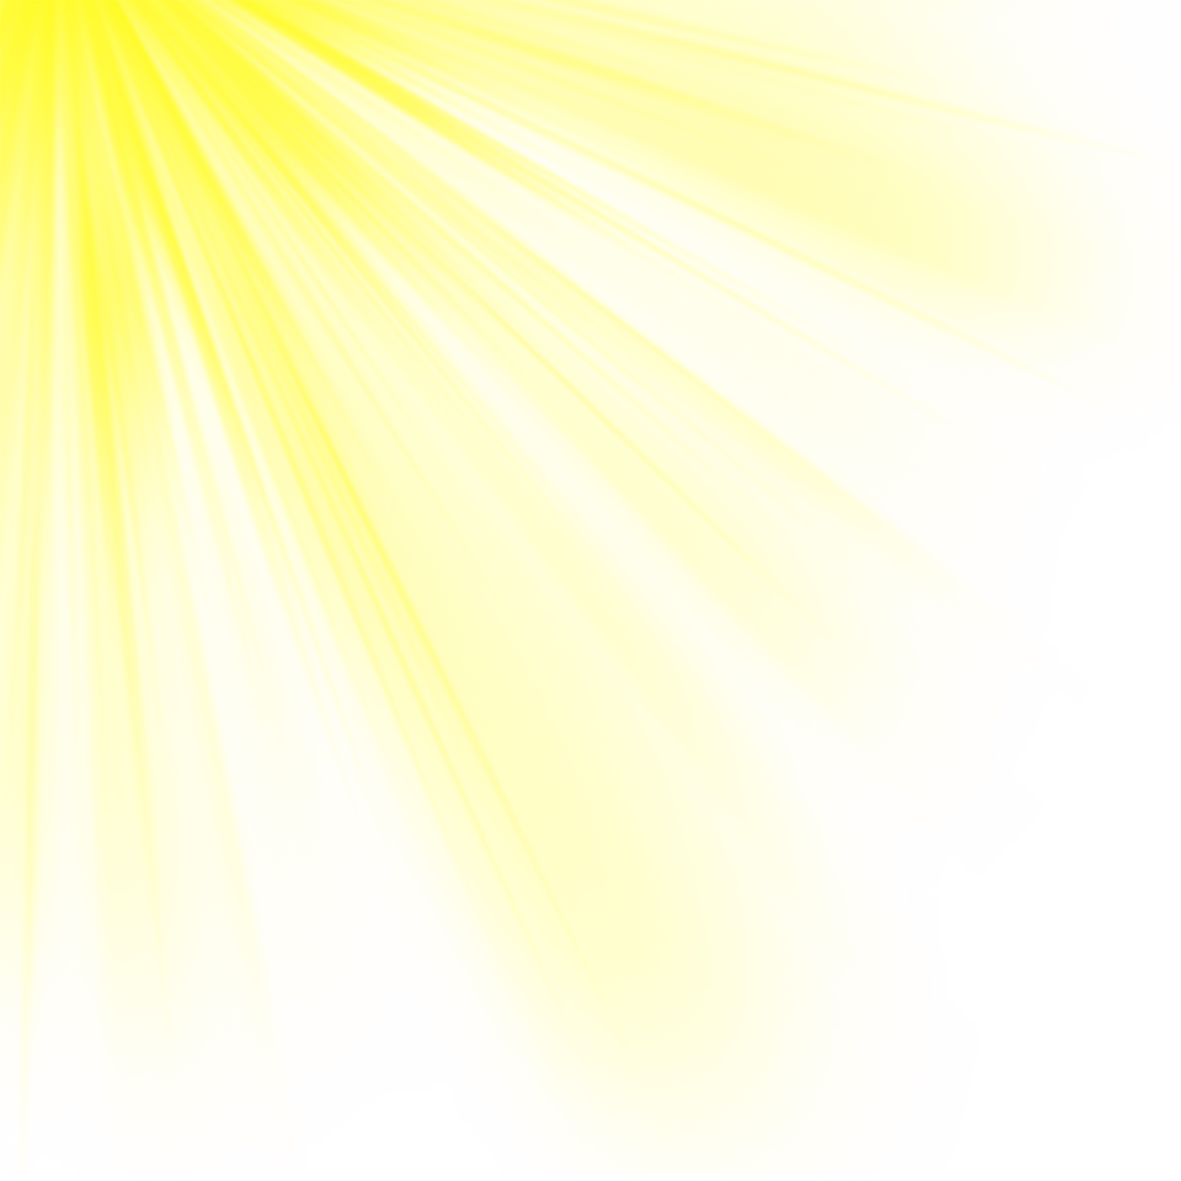 Gold light effect png. Yellow effects